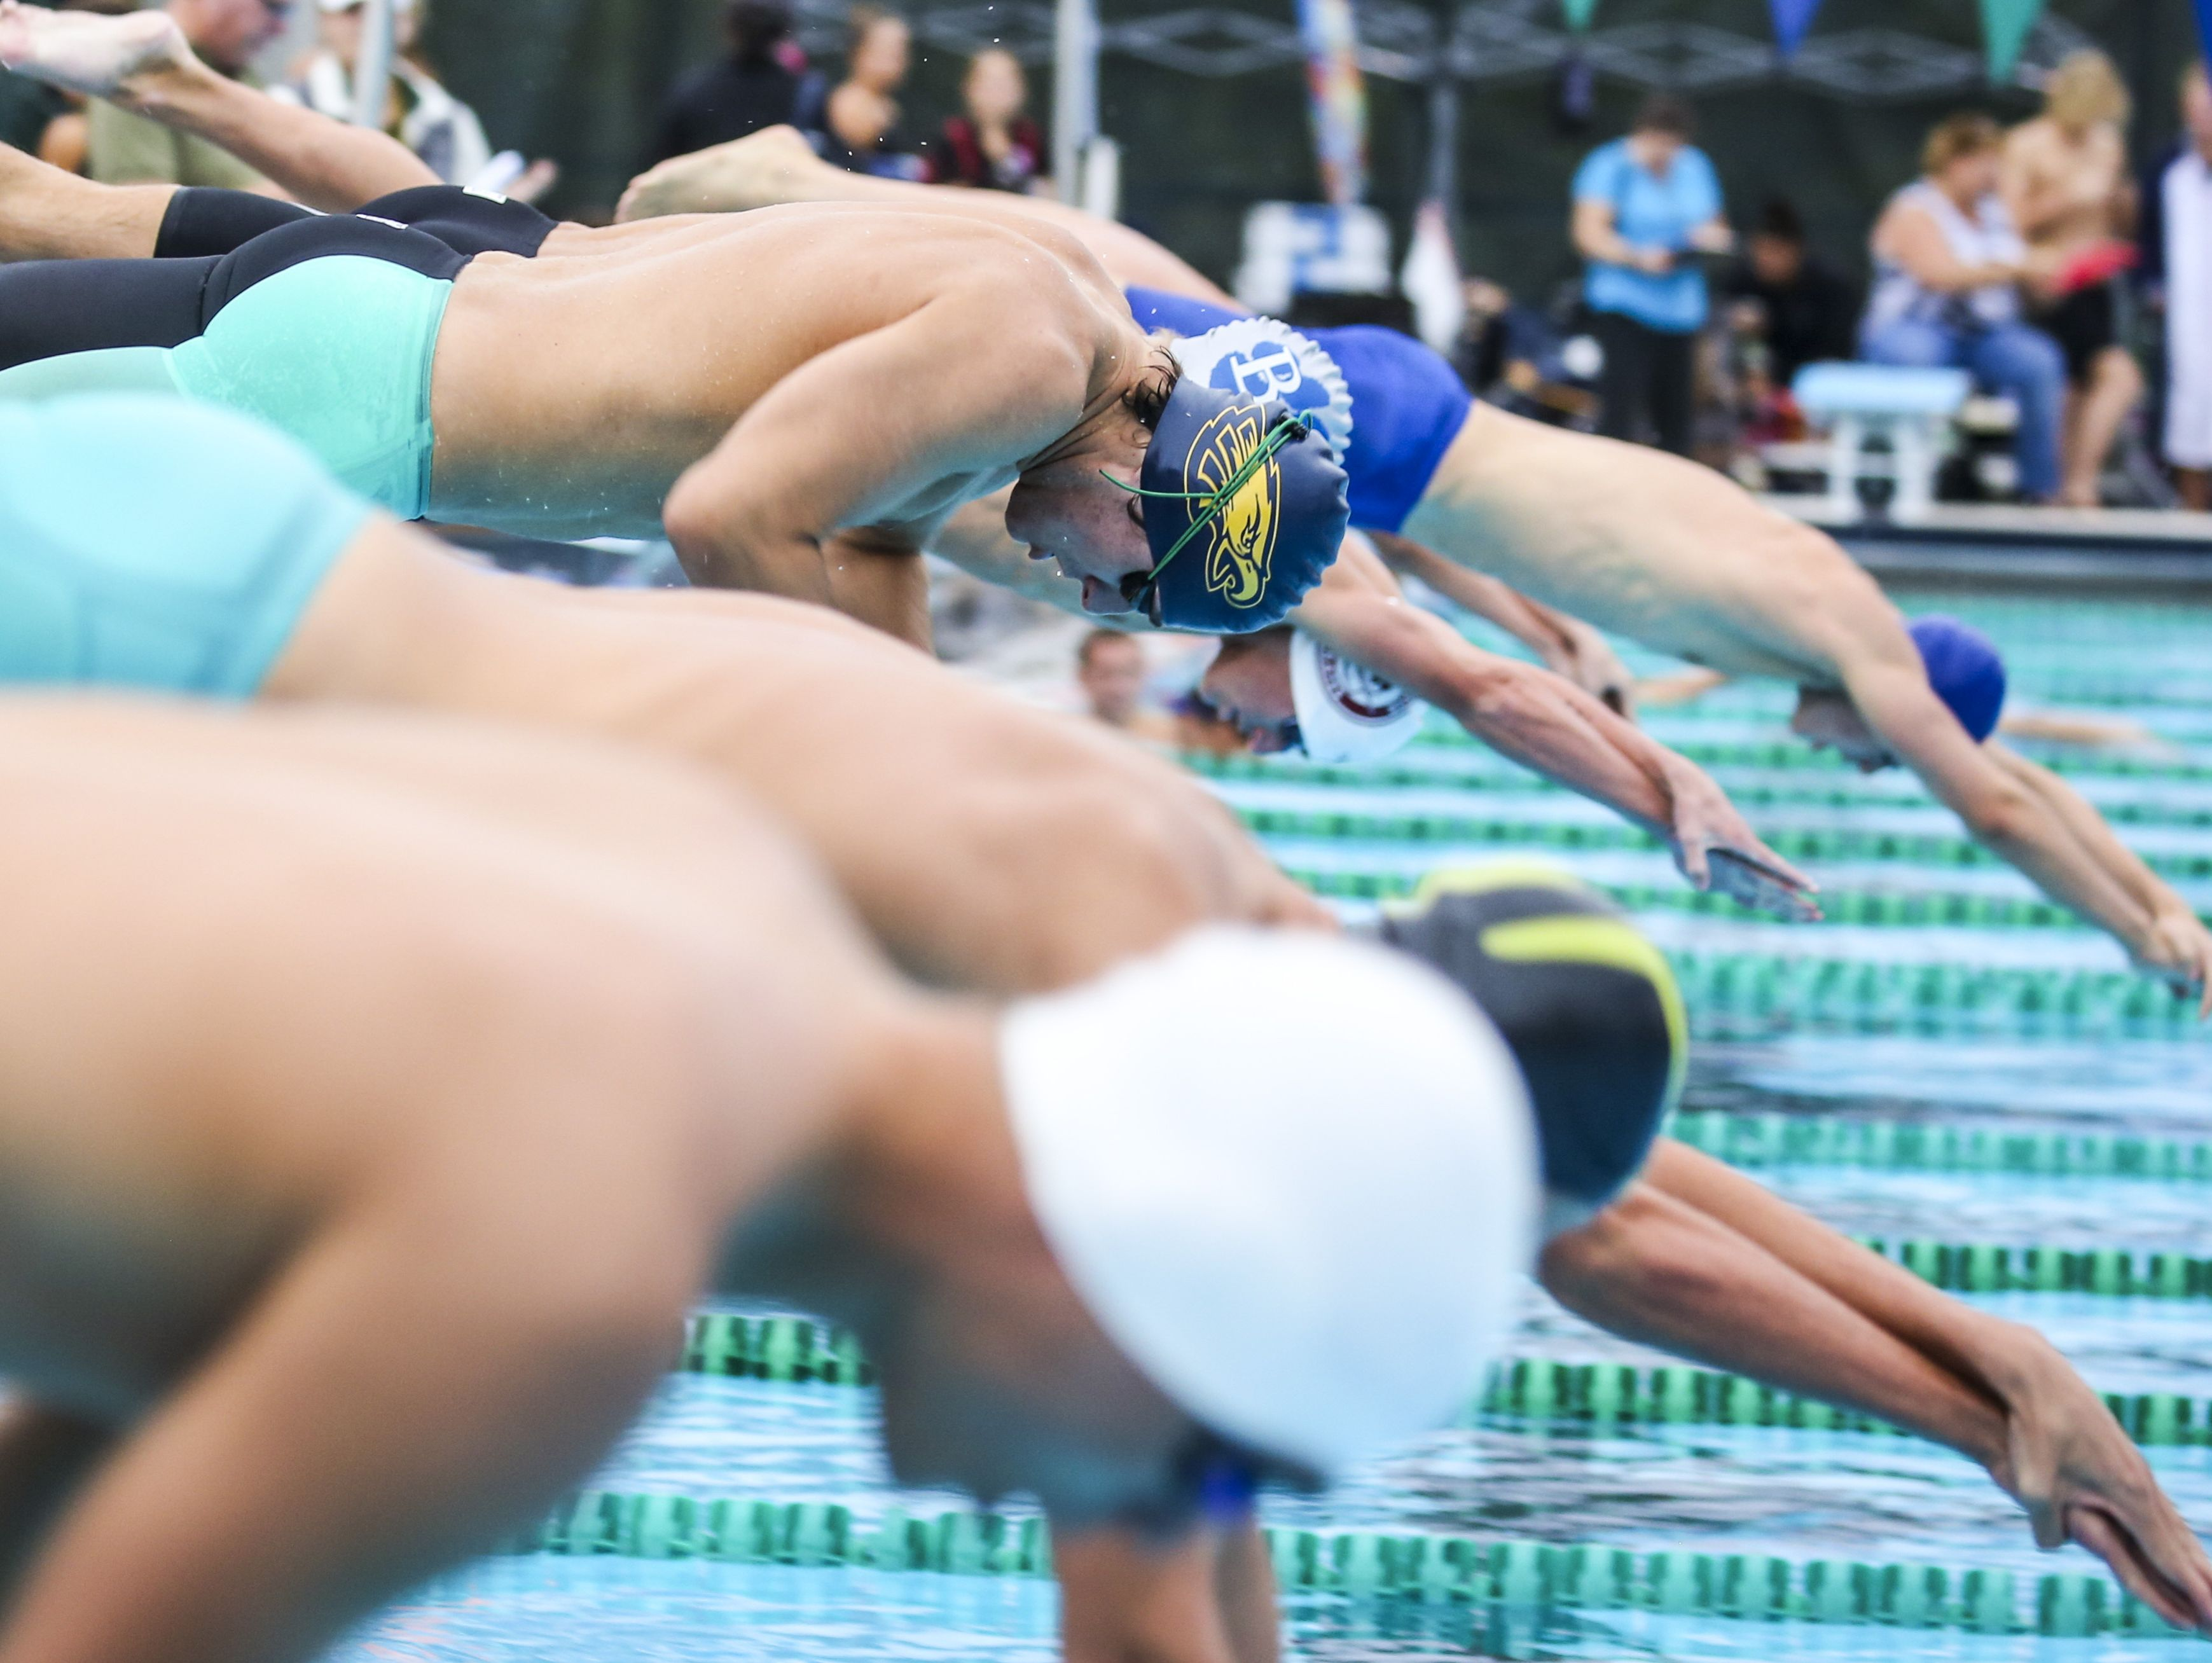 Naples, John Scanlon takes off in the third heat of the 200 yard freestyle during the Region 3A-3 swimming at FGCU Aquatic Center.